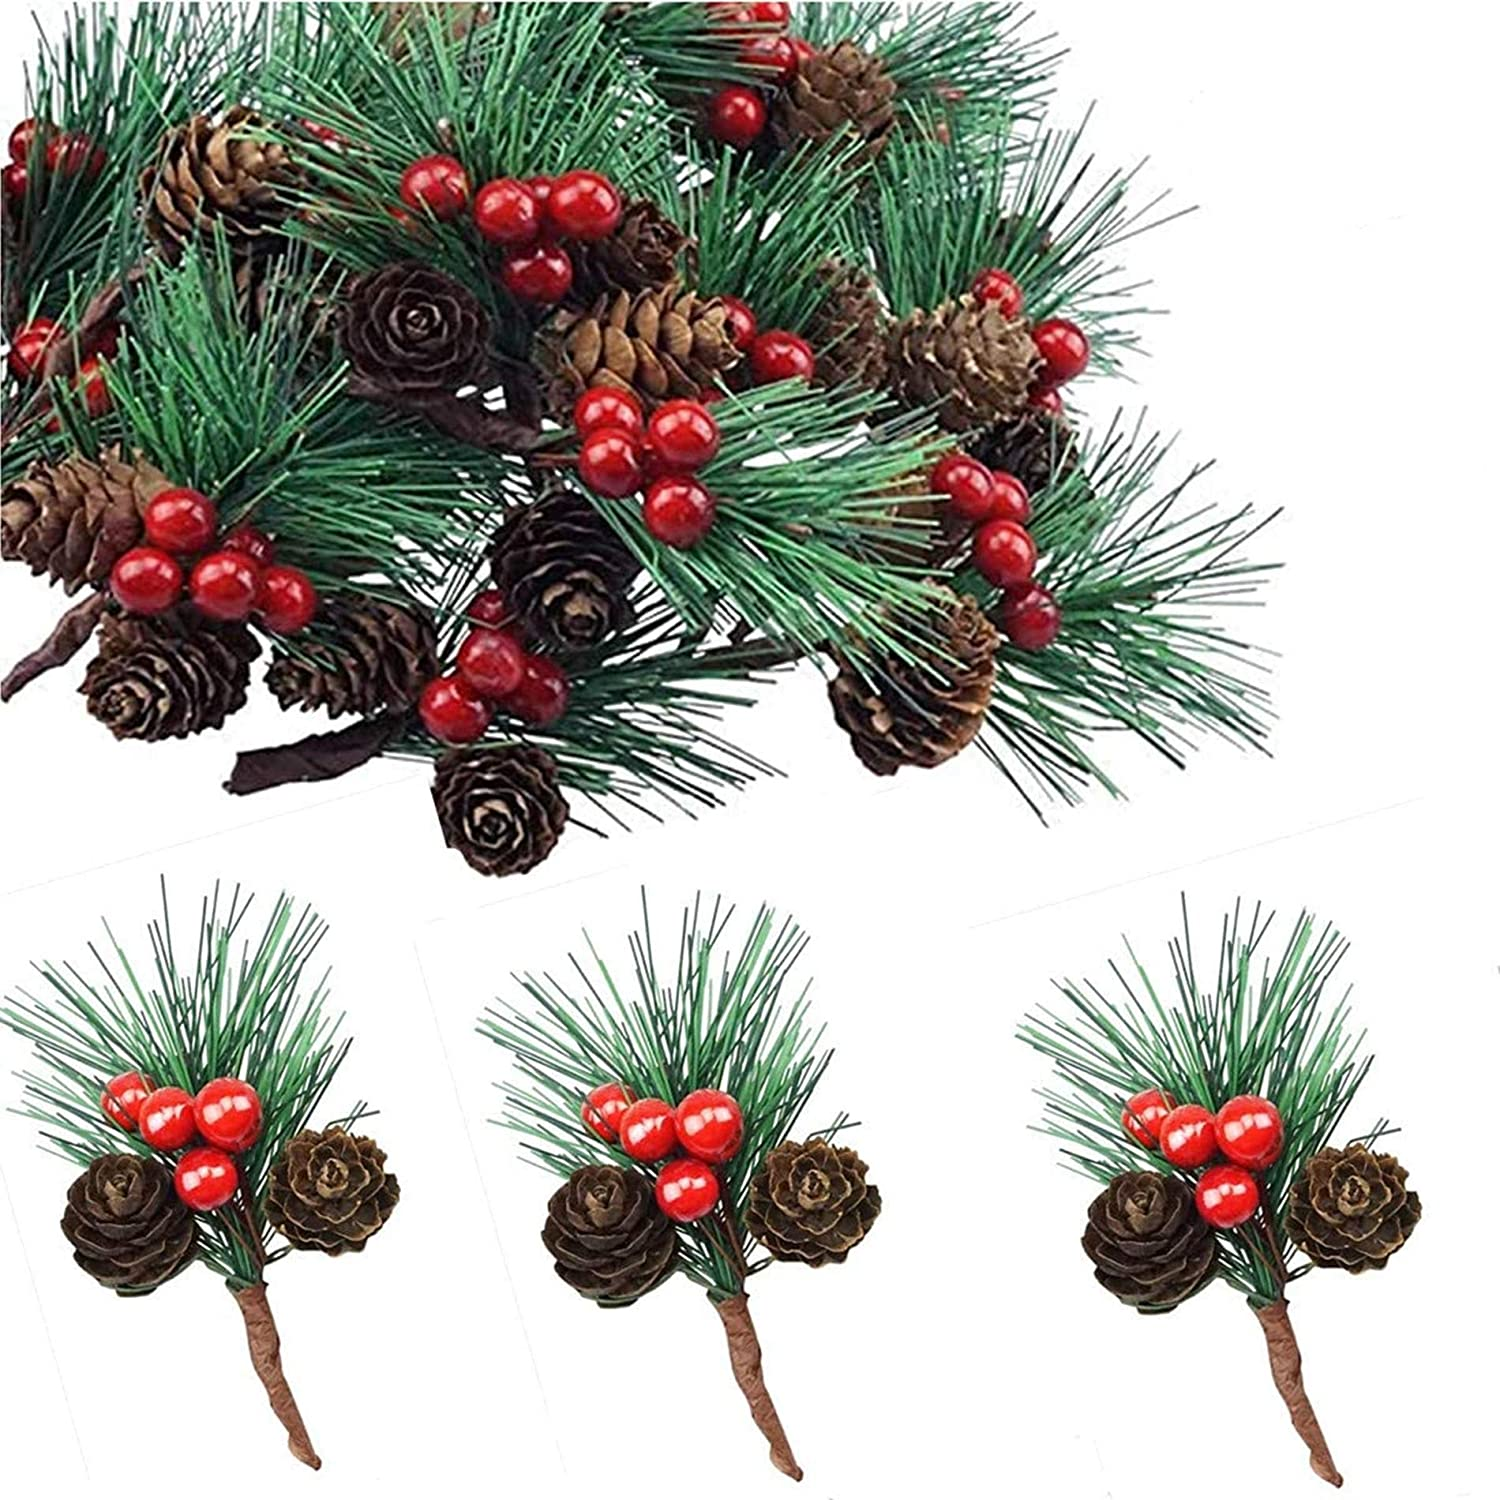 Fbaby 20 Packs Artificial Red Berry Pine Cones Needles Stems, Winter Christmas Garland and Berries Decor for Xmas, DIY Crafts, Holiday Wreath Ornaments and Home Garden Decoration